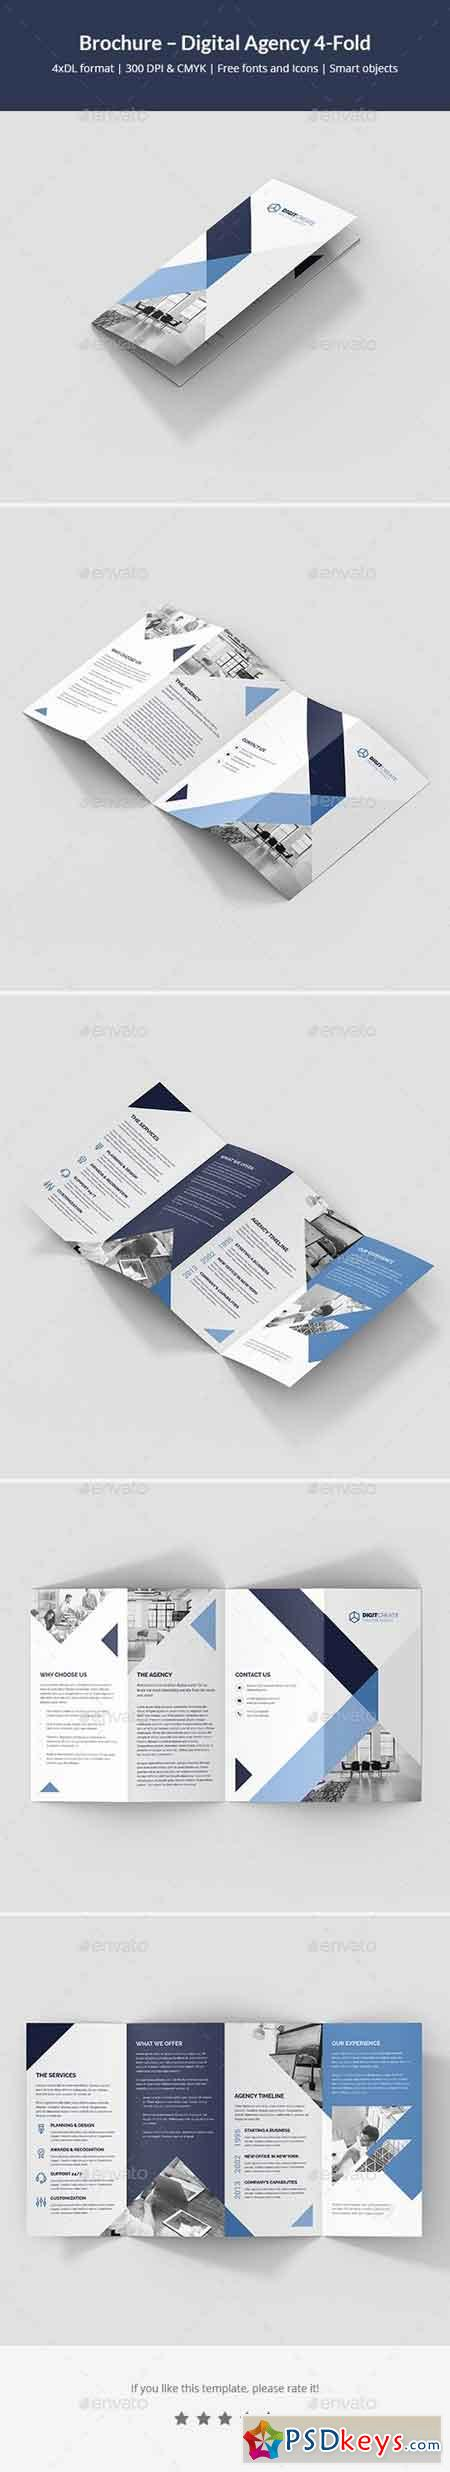 Brochure – Digital Agency 4-Fold 21486646